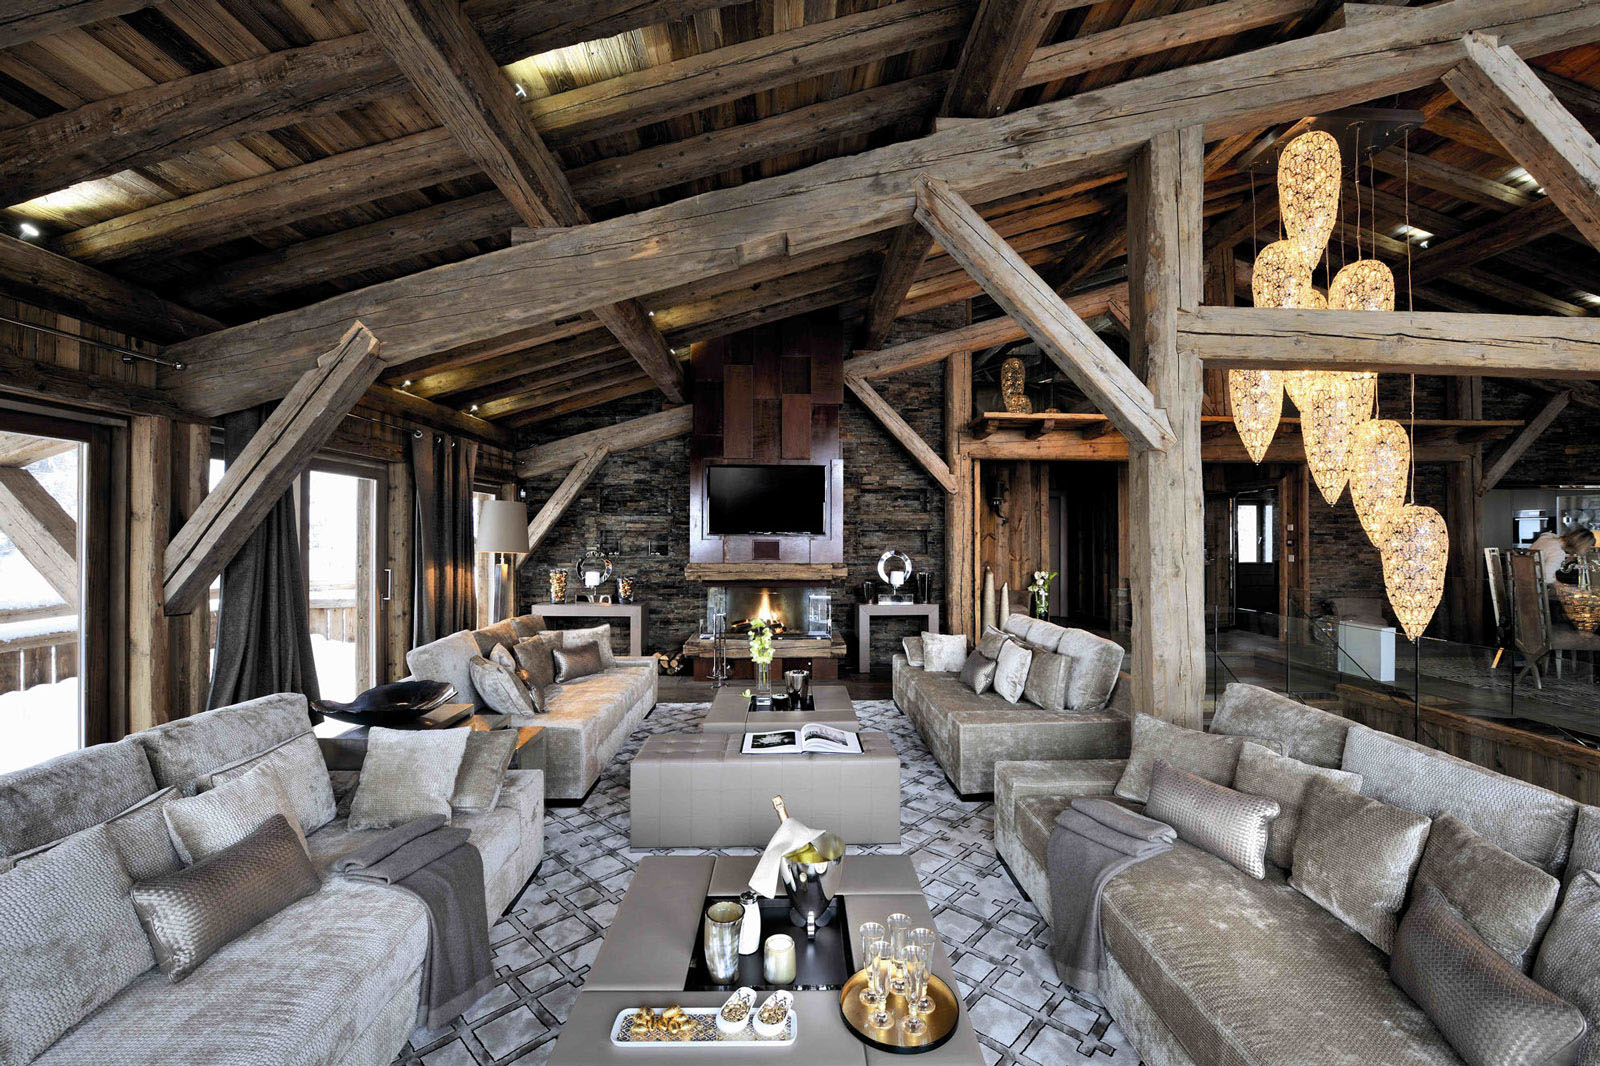 Chic modern rustic chalet in the rh ne alpes idesignarch interior design architecture Rustic home architecture